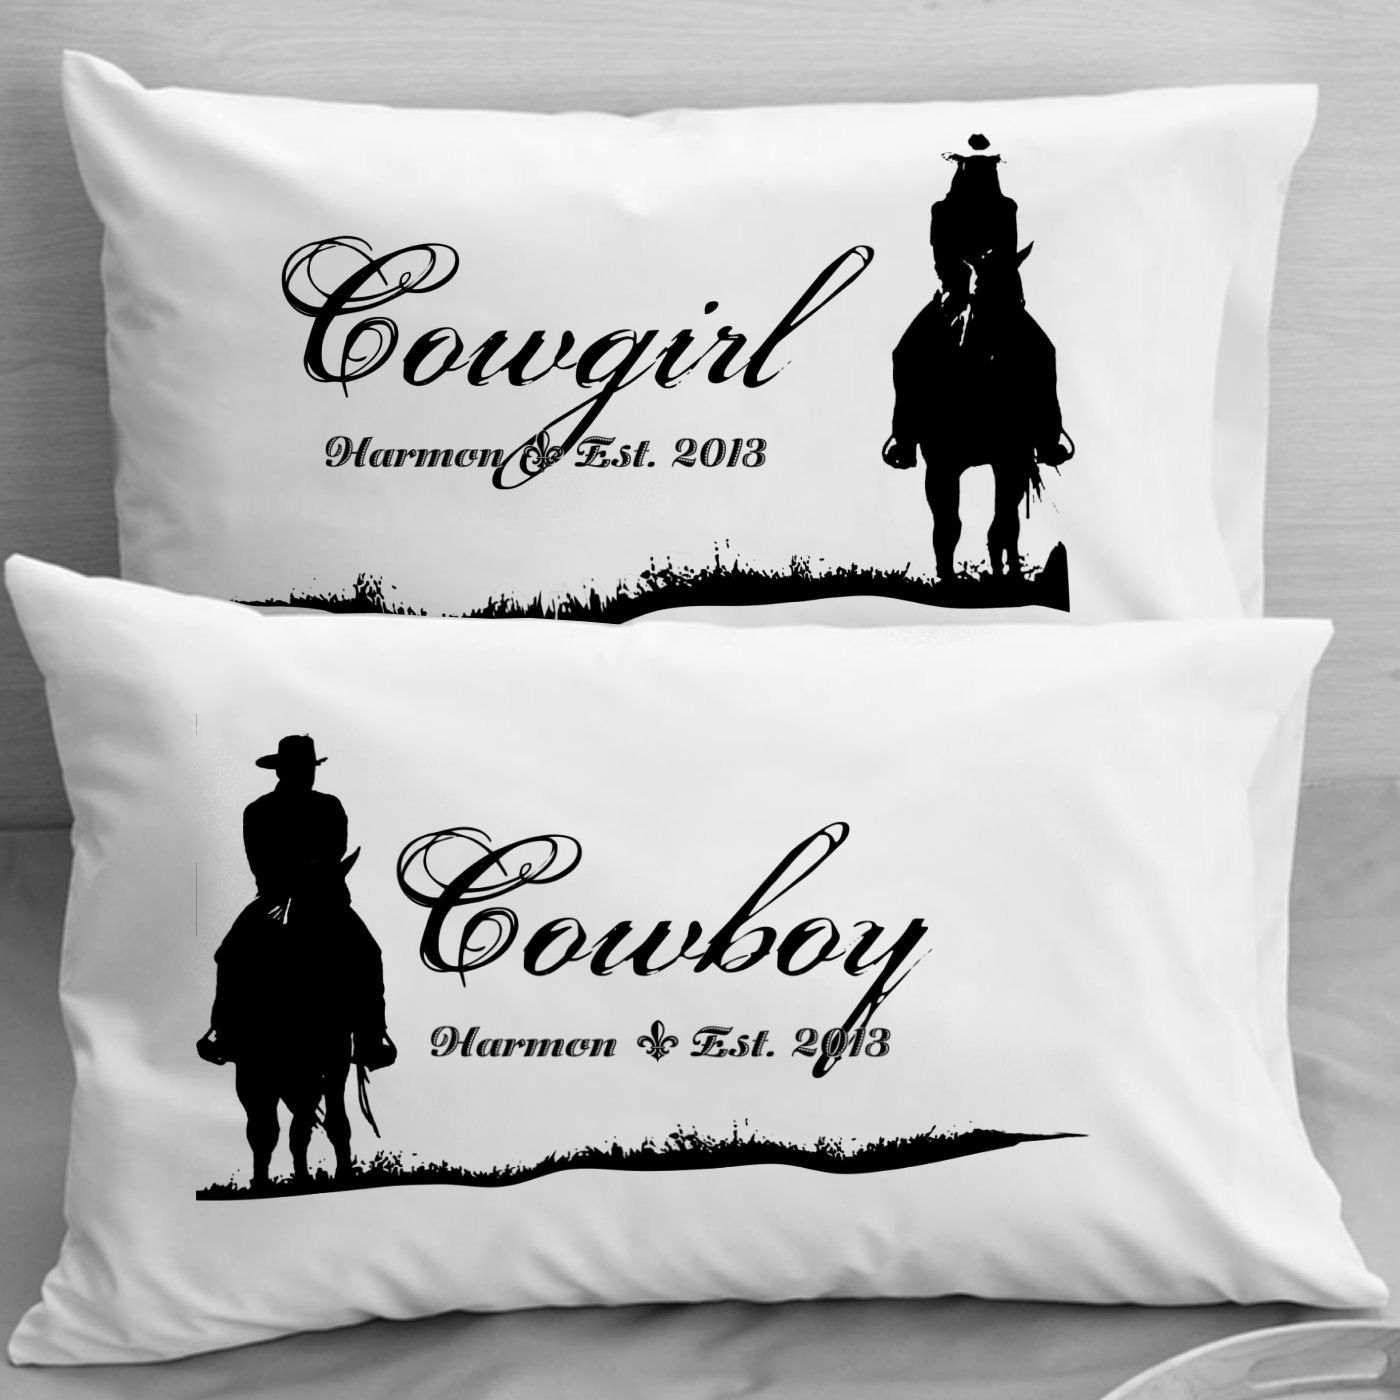 Personalized cowboy cowgirl pillow cases pillowcases wife husband